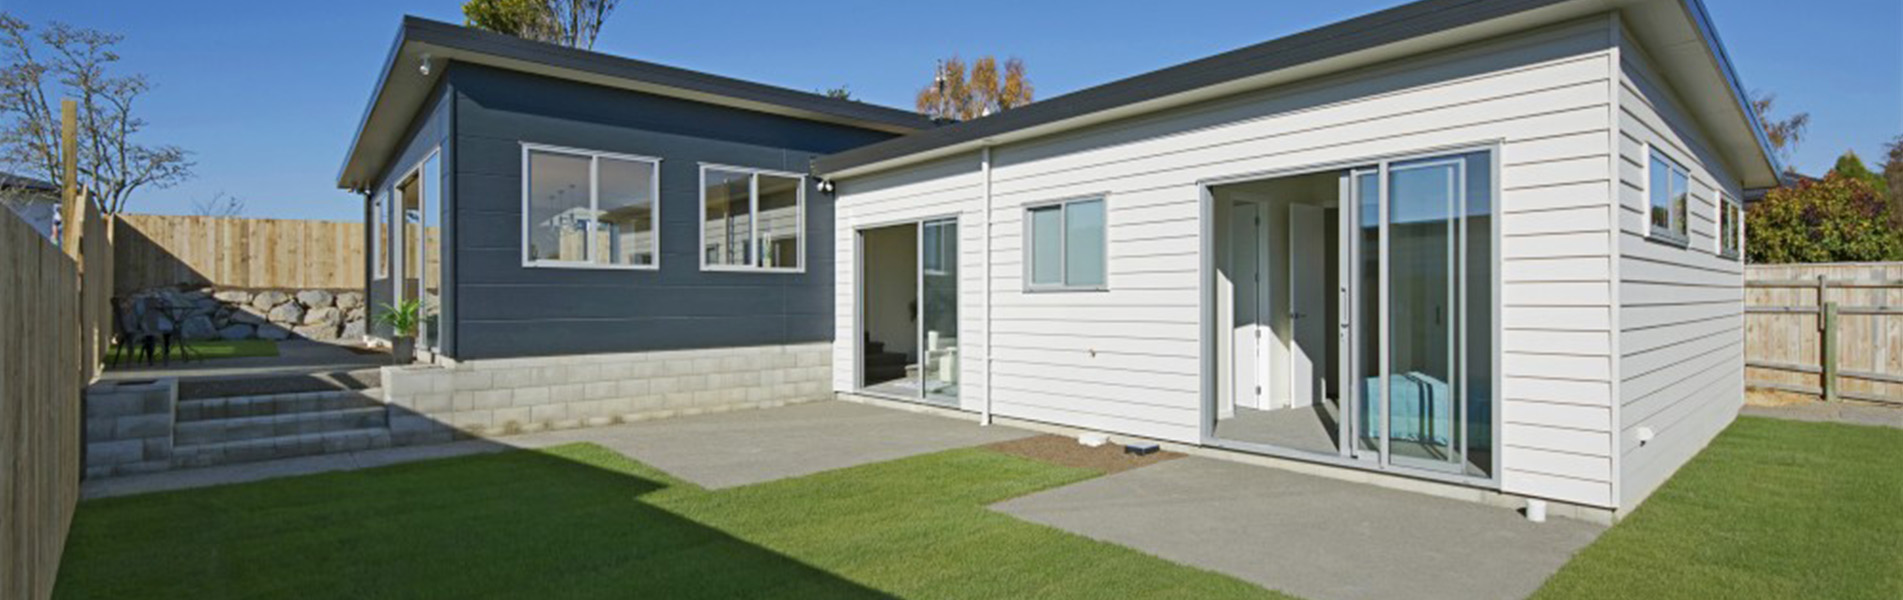 commercial industrial residential farming building systems